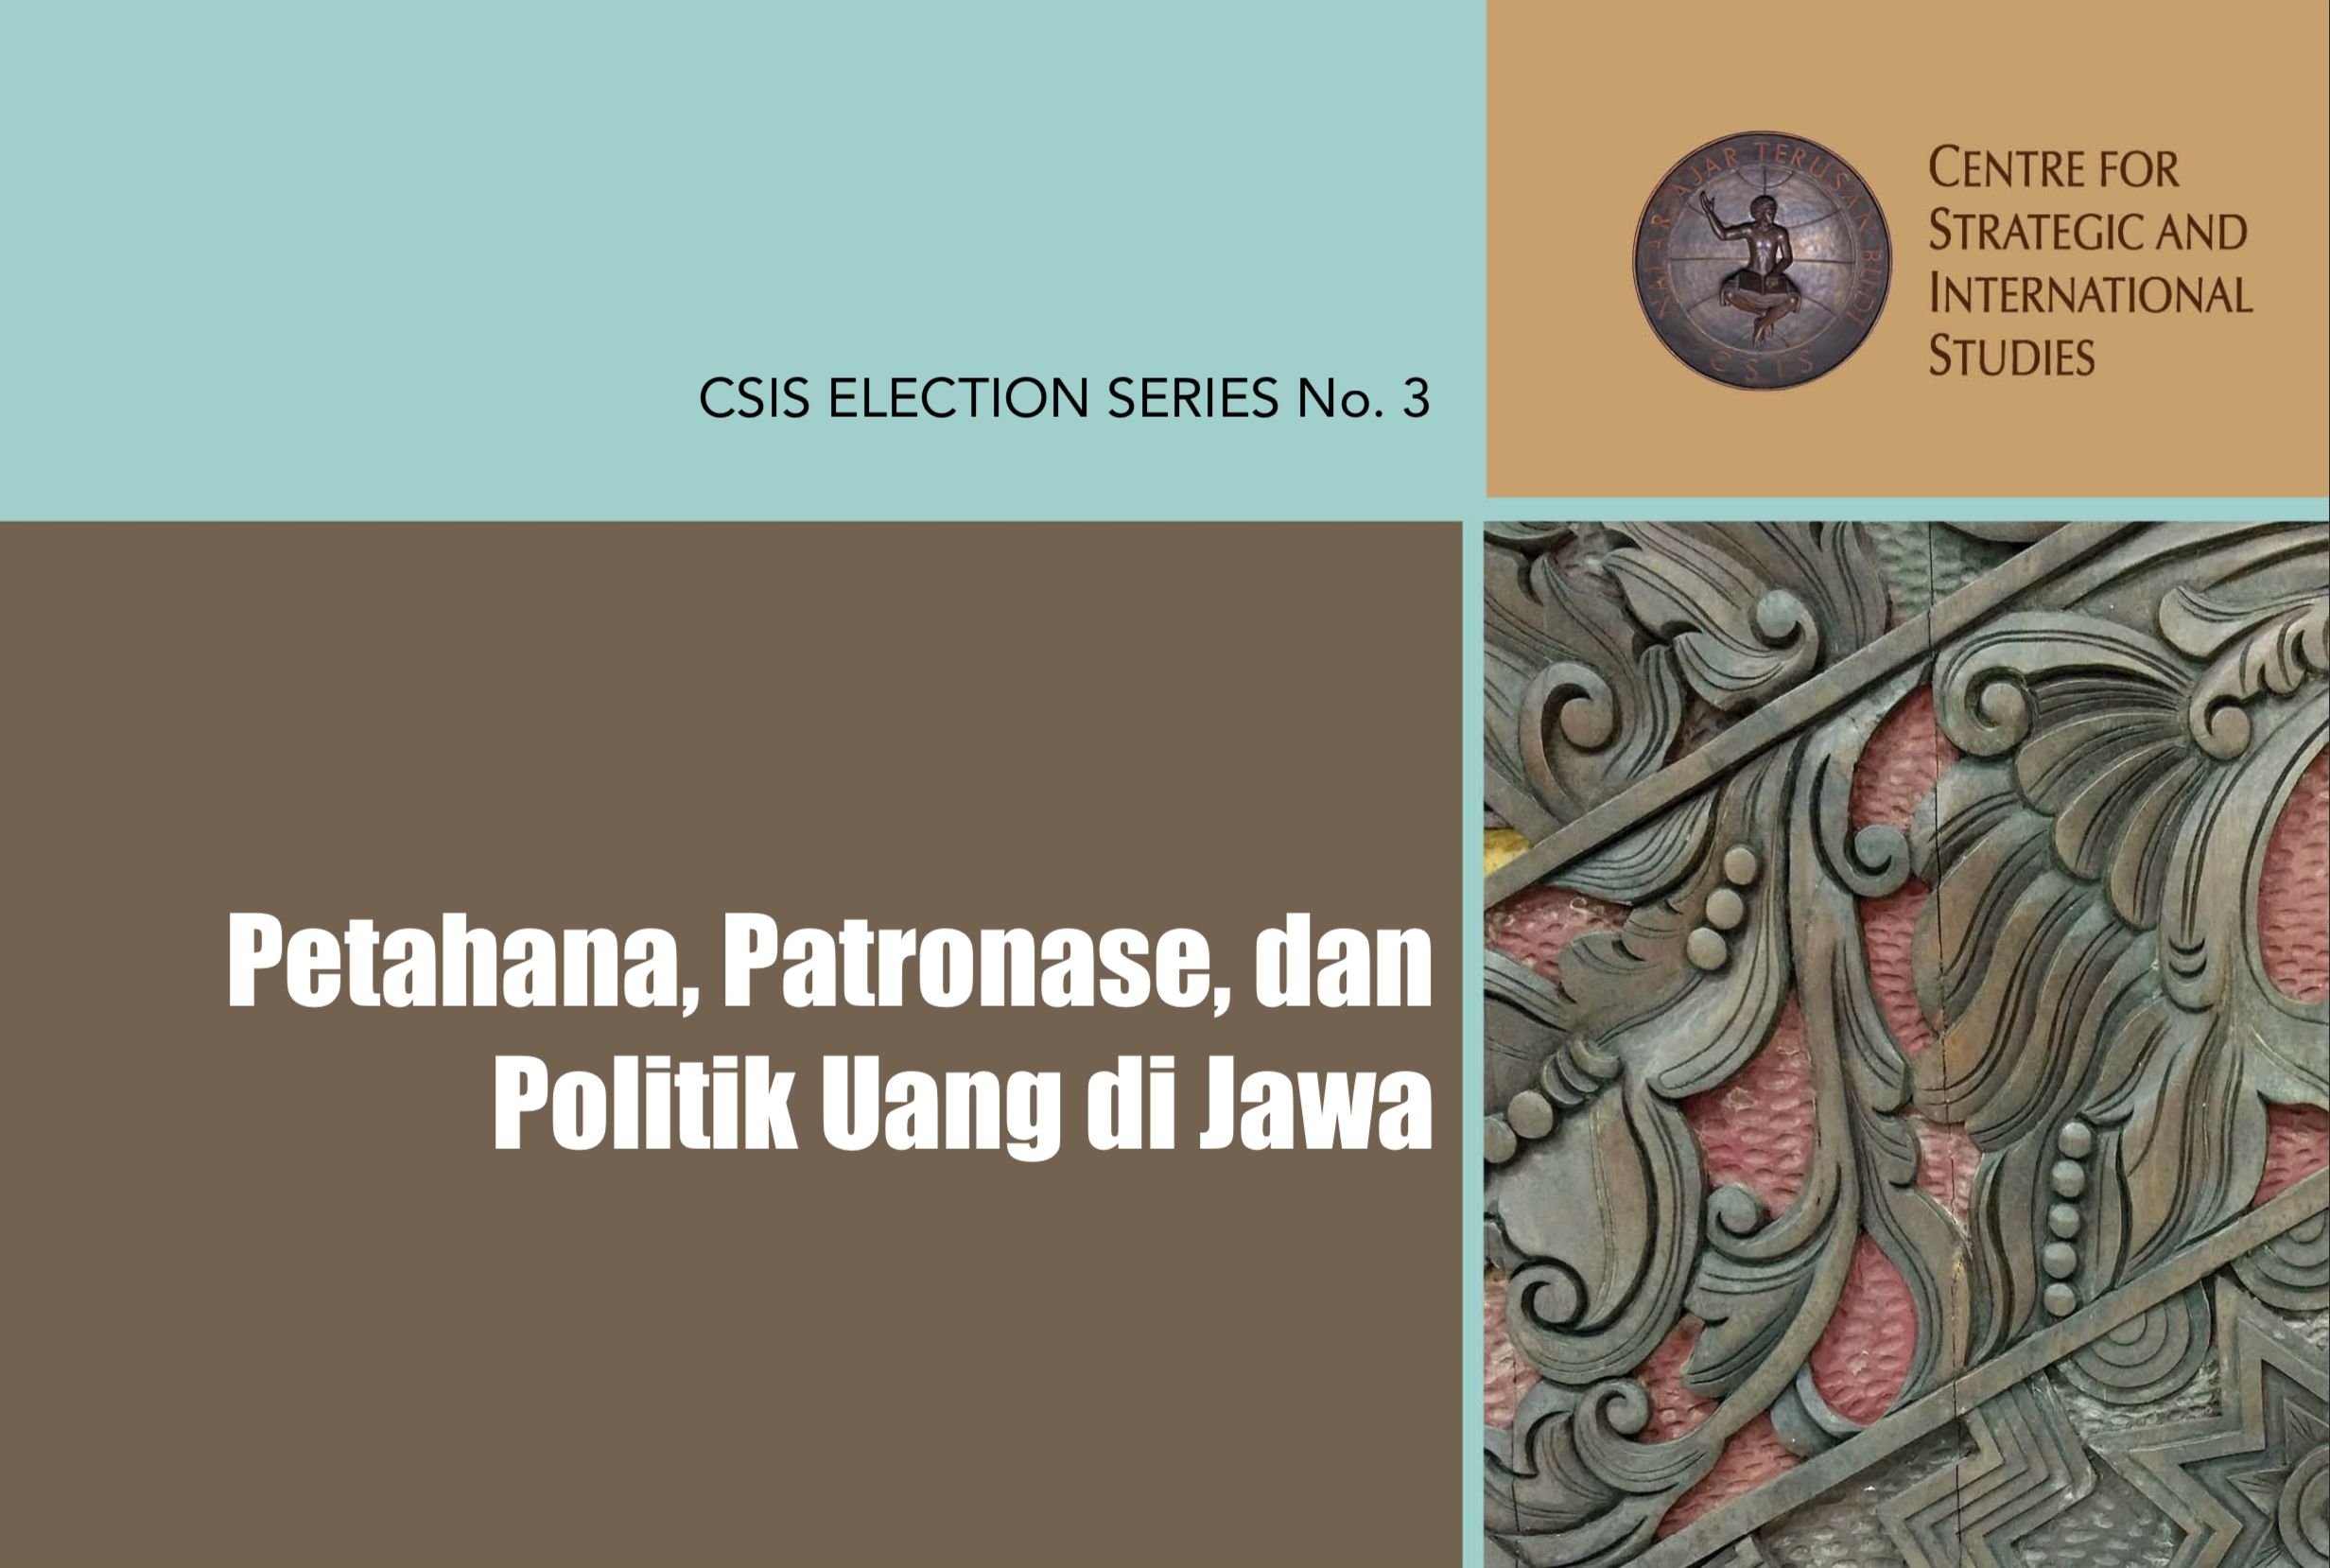 Economic voting in Indonesia: How economic factors influence political preferences